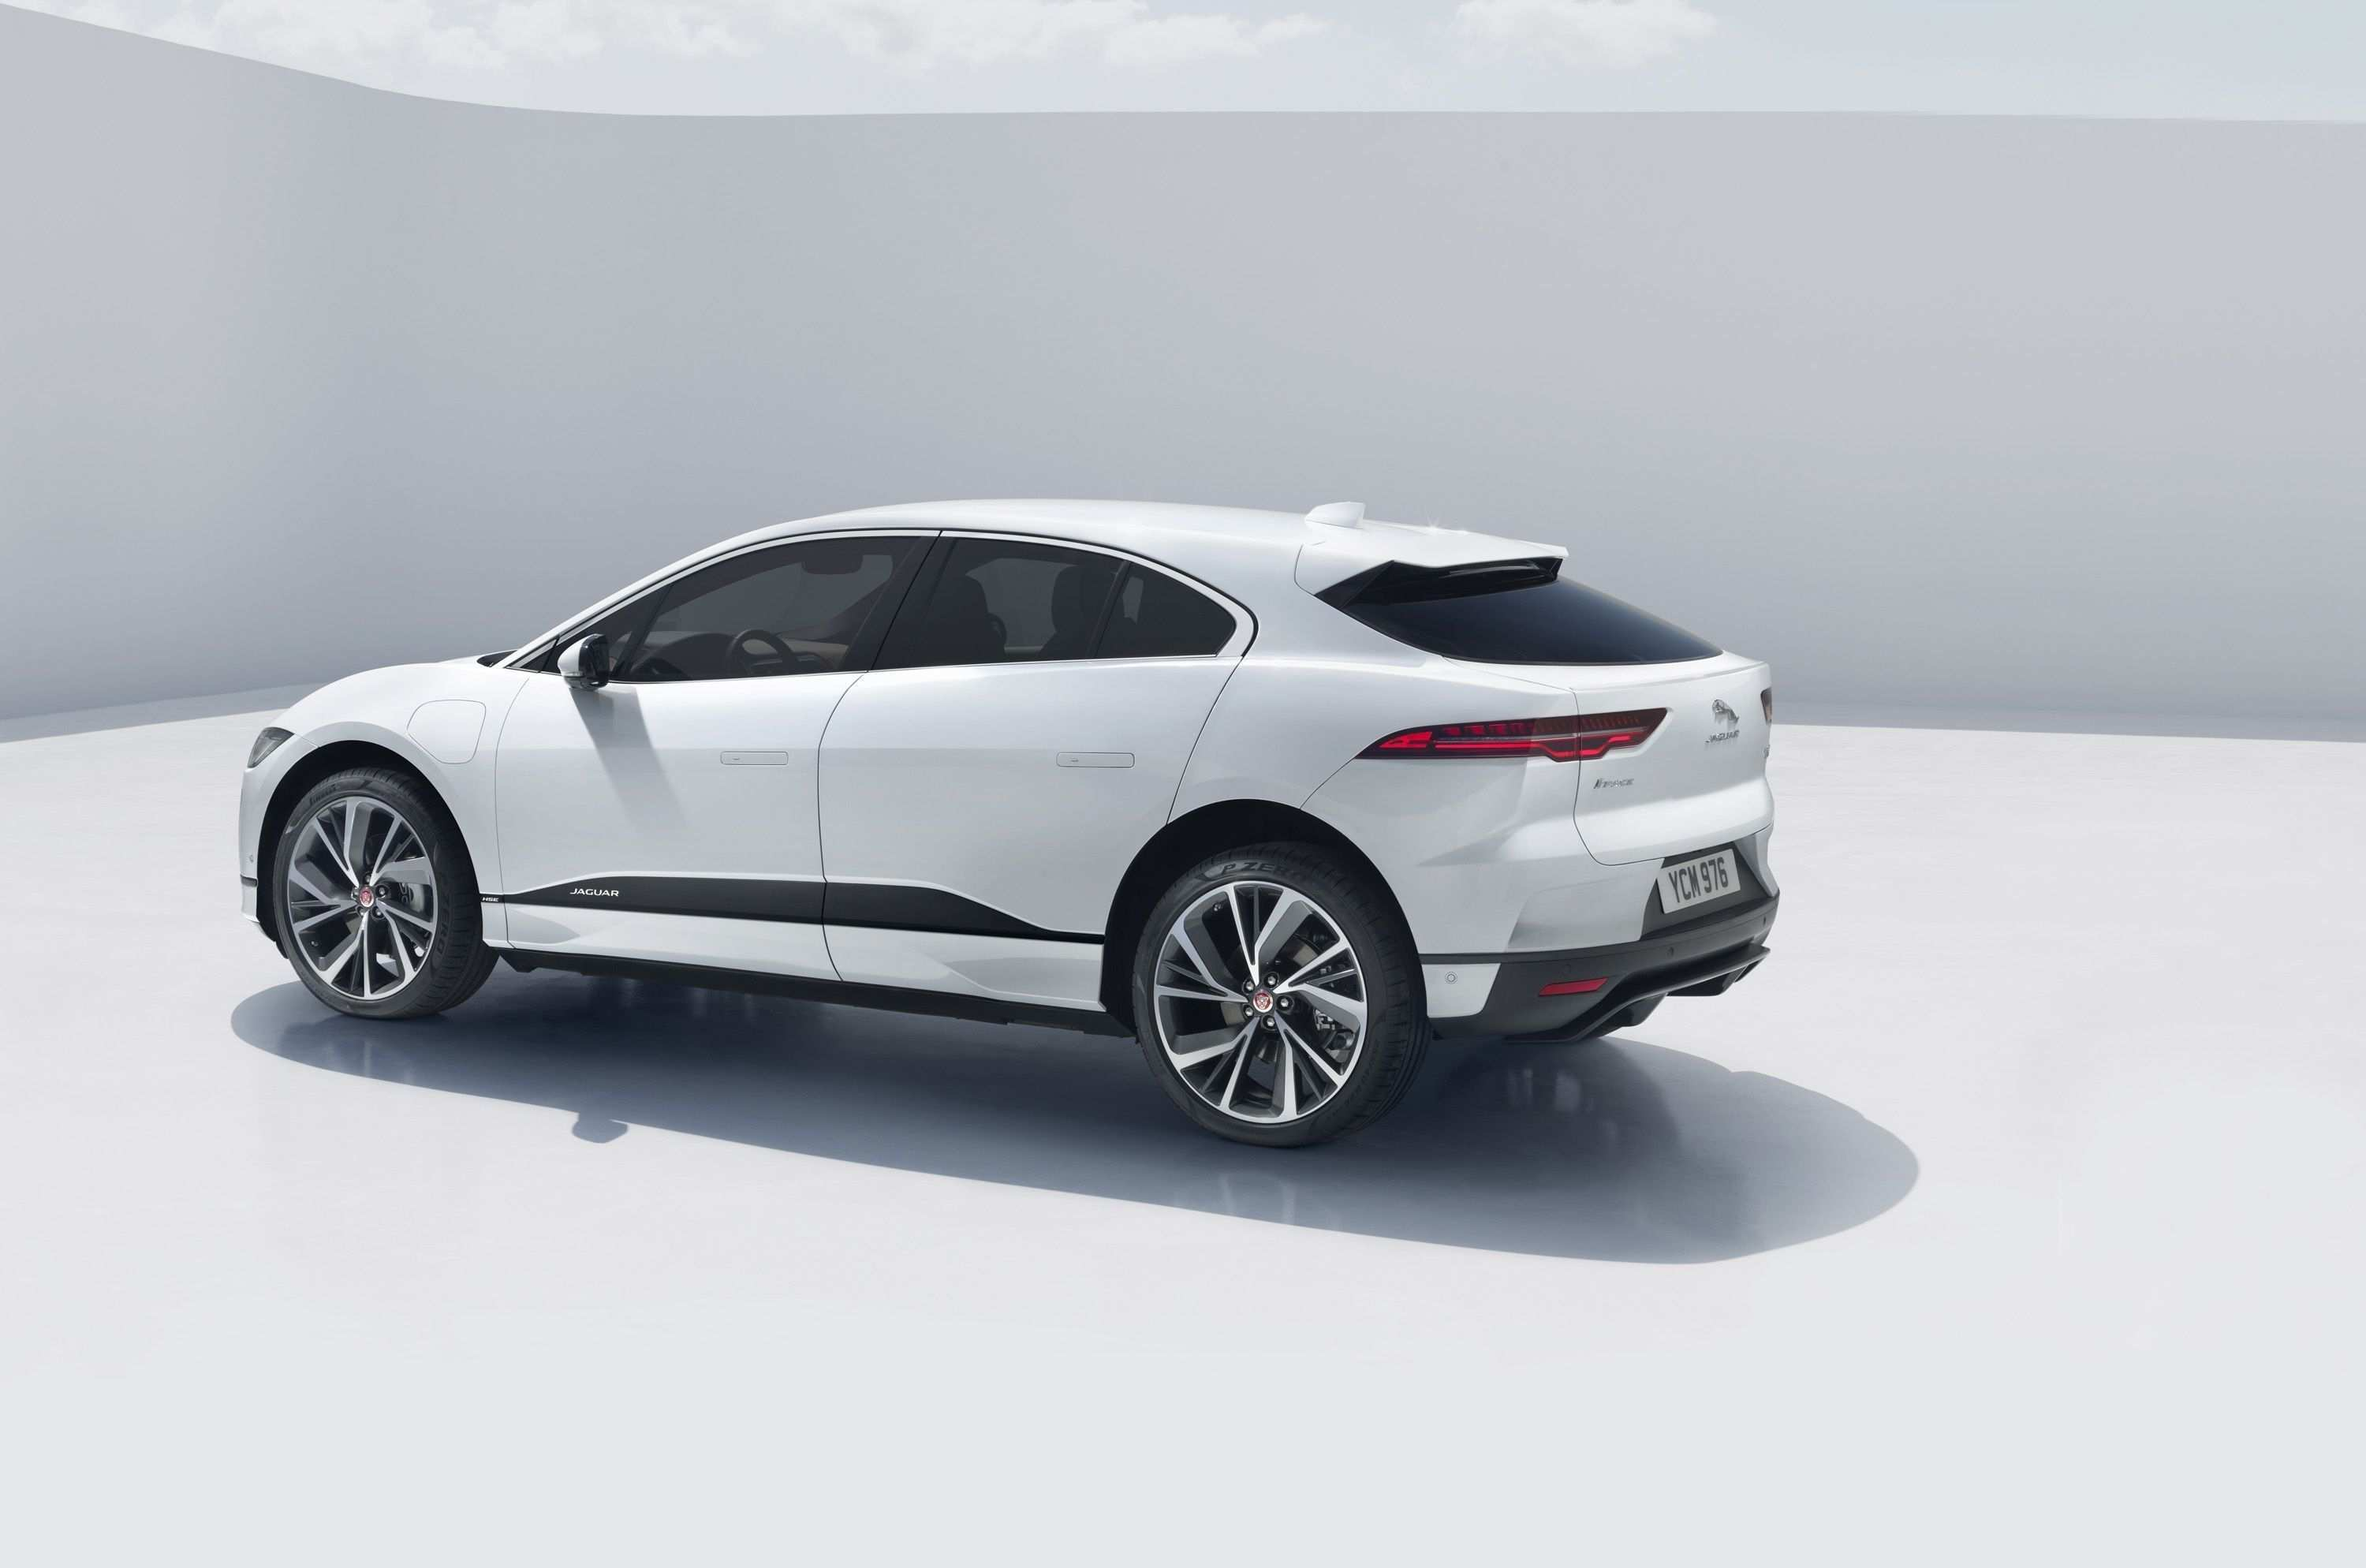 14 New 2020 Jaguar I Pace Exterior Release Date for 2020 Jaguar I Pace Exterior